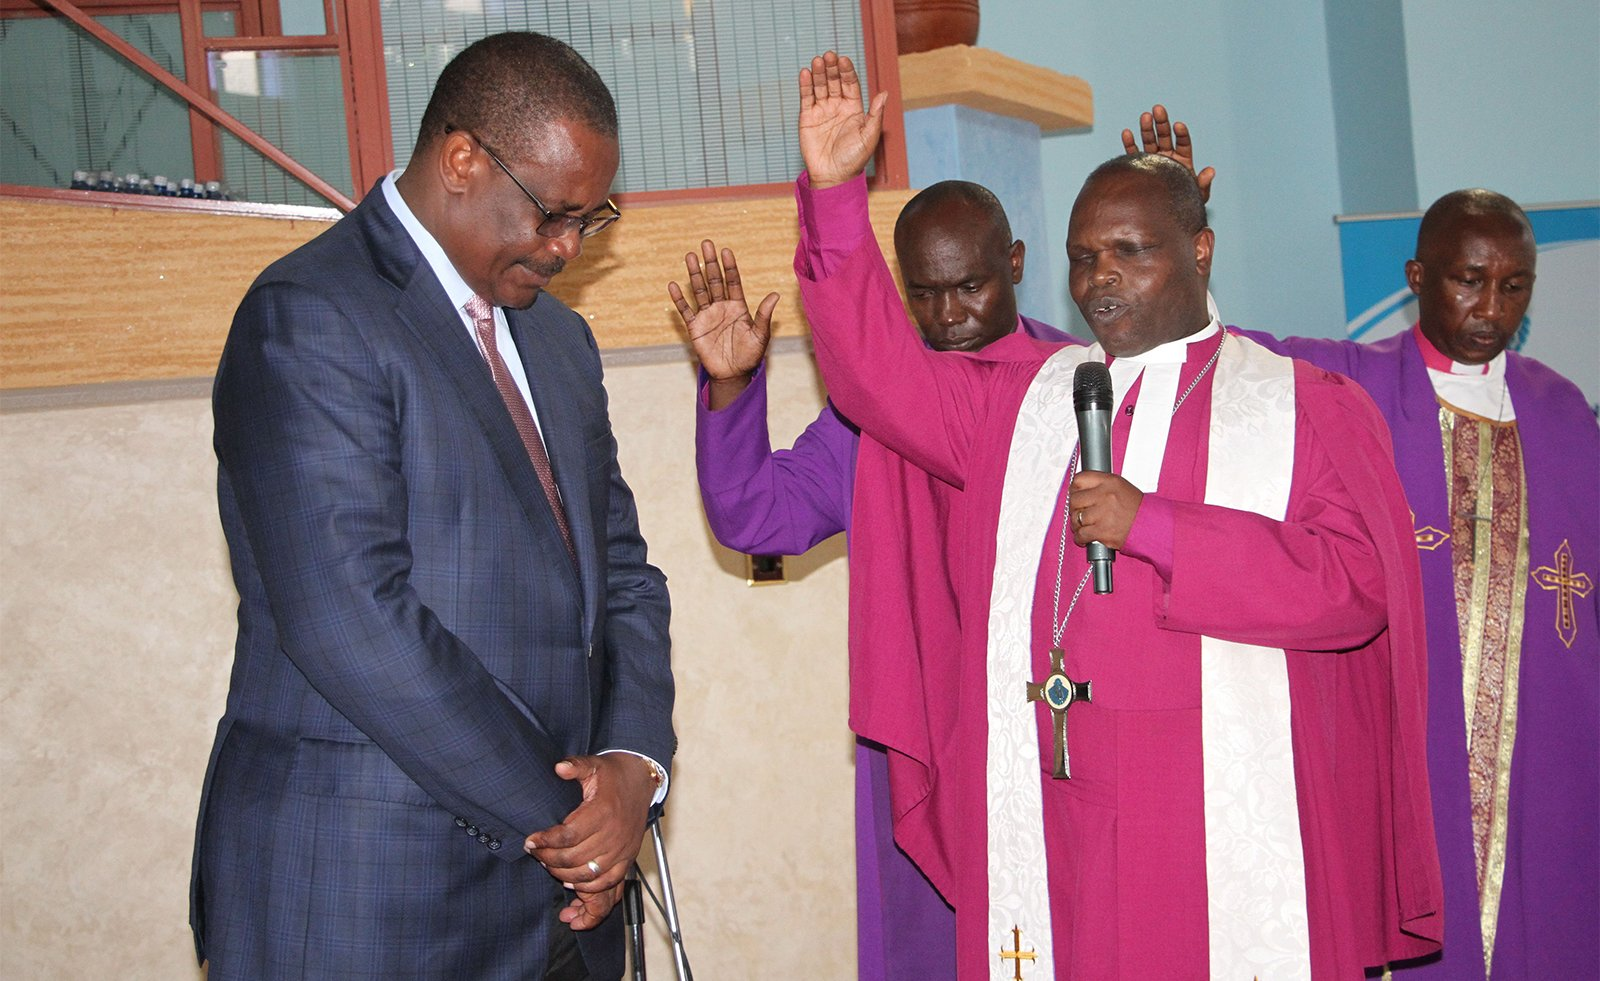 Kenyan Methodists Defy Ban on Campaigning at Church, Saying 'Humans Are Political'